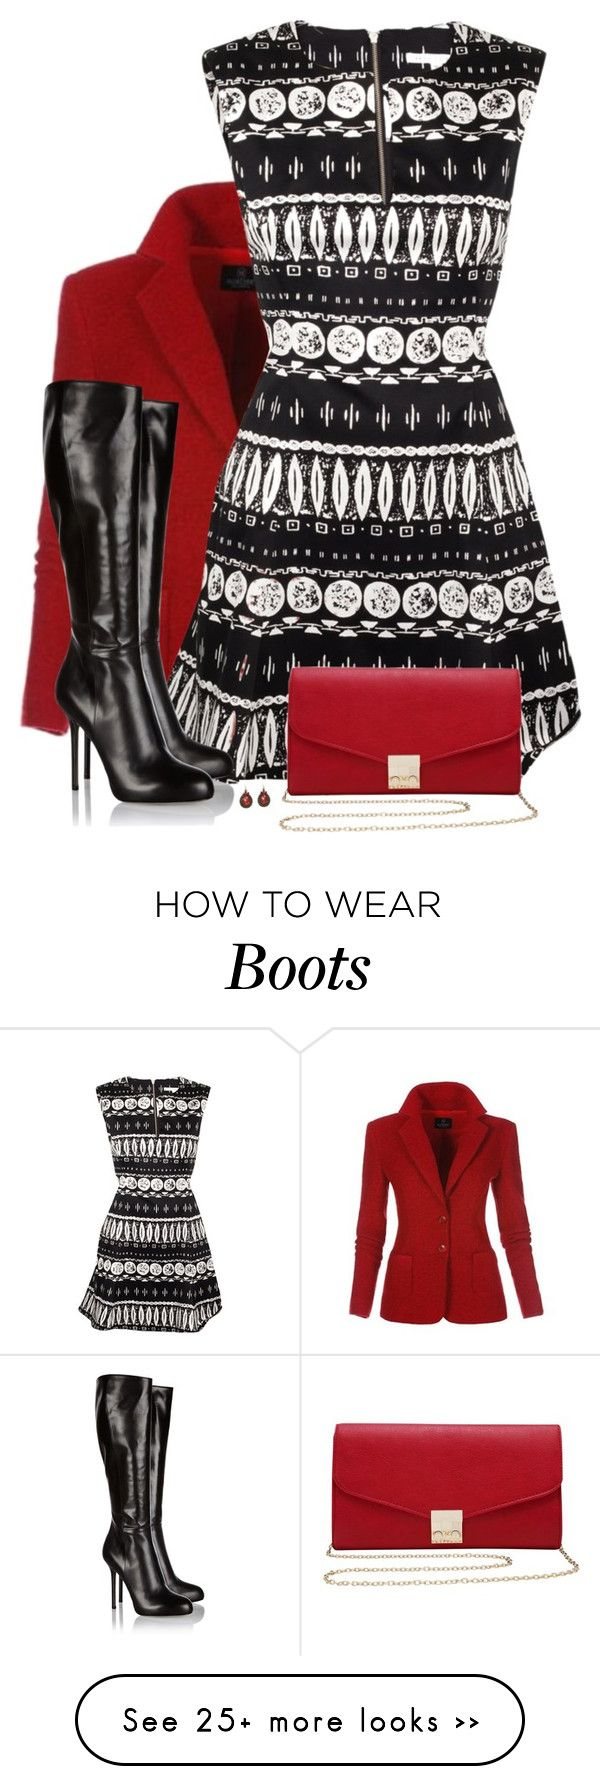 """Dress and Boots"" by daiscat on Polyvore featuring Veronica Beard, M&Co, Sergio Rossi and Urbiana"